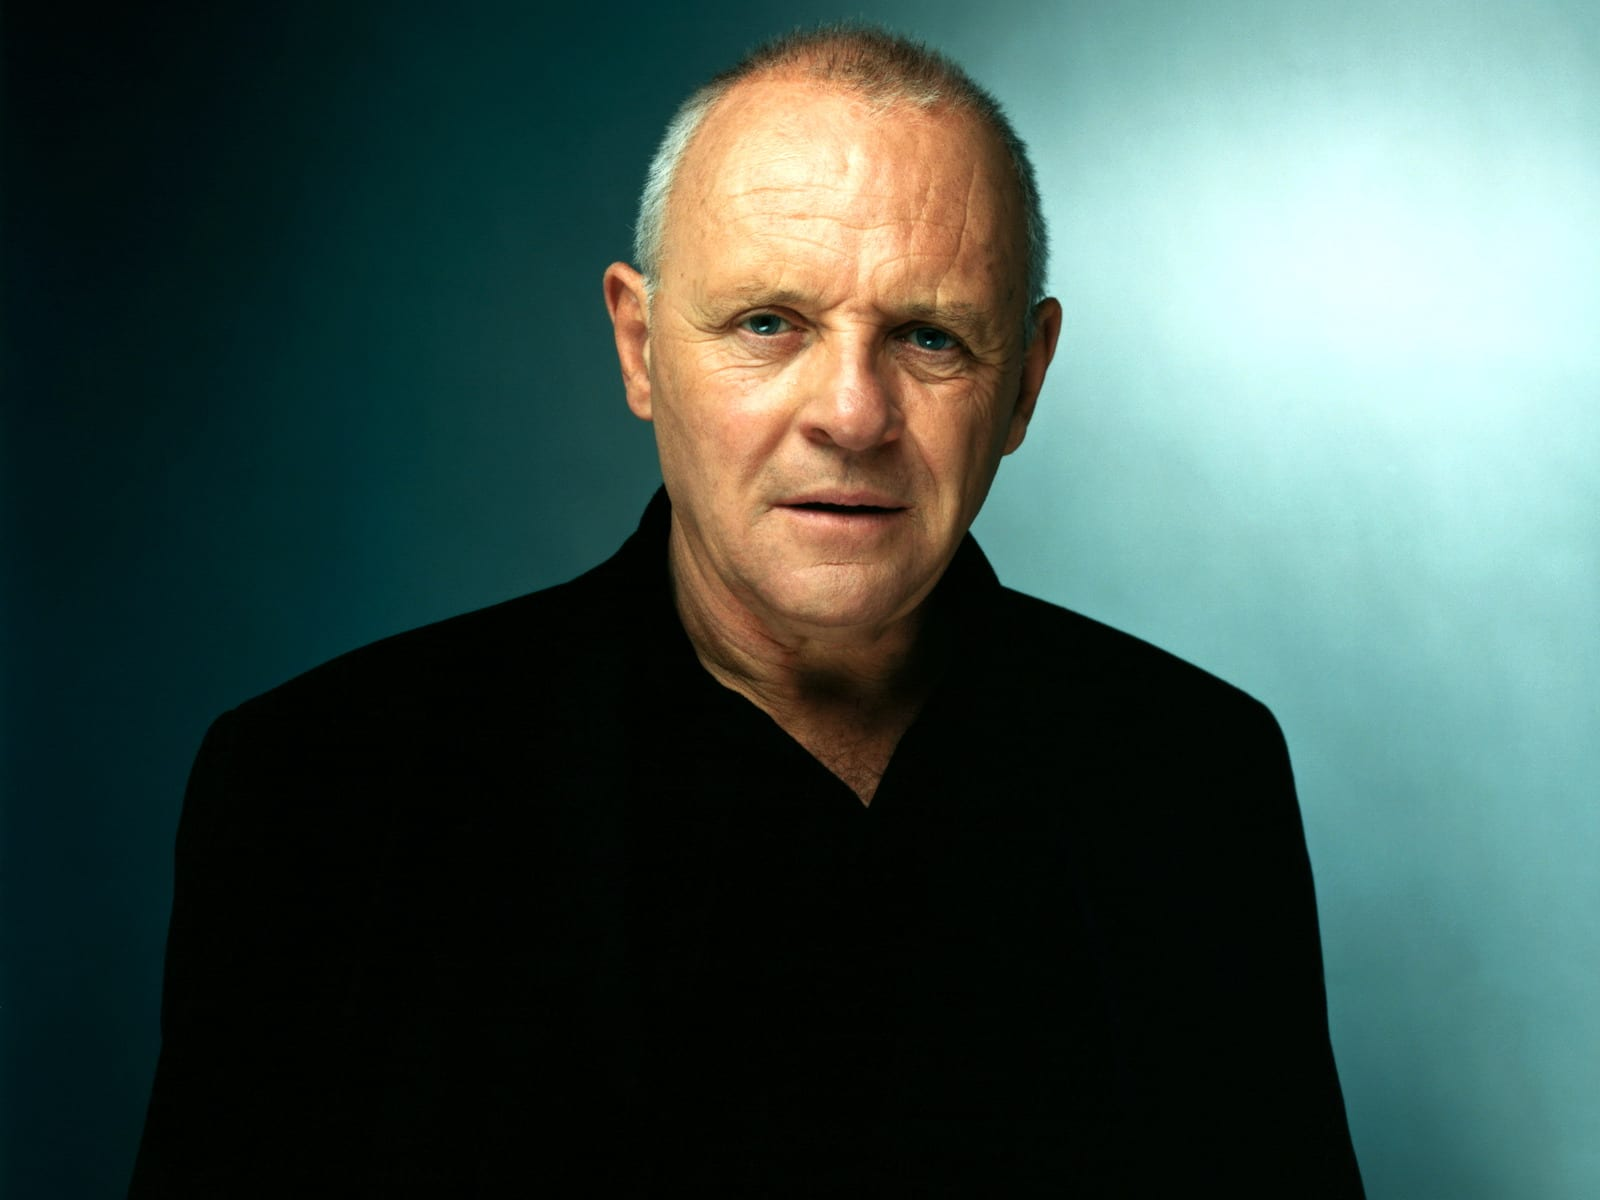 Where Are You Anthony Hopkins